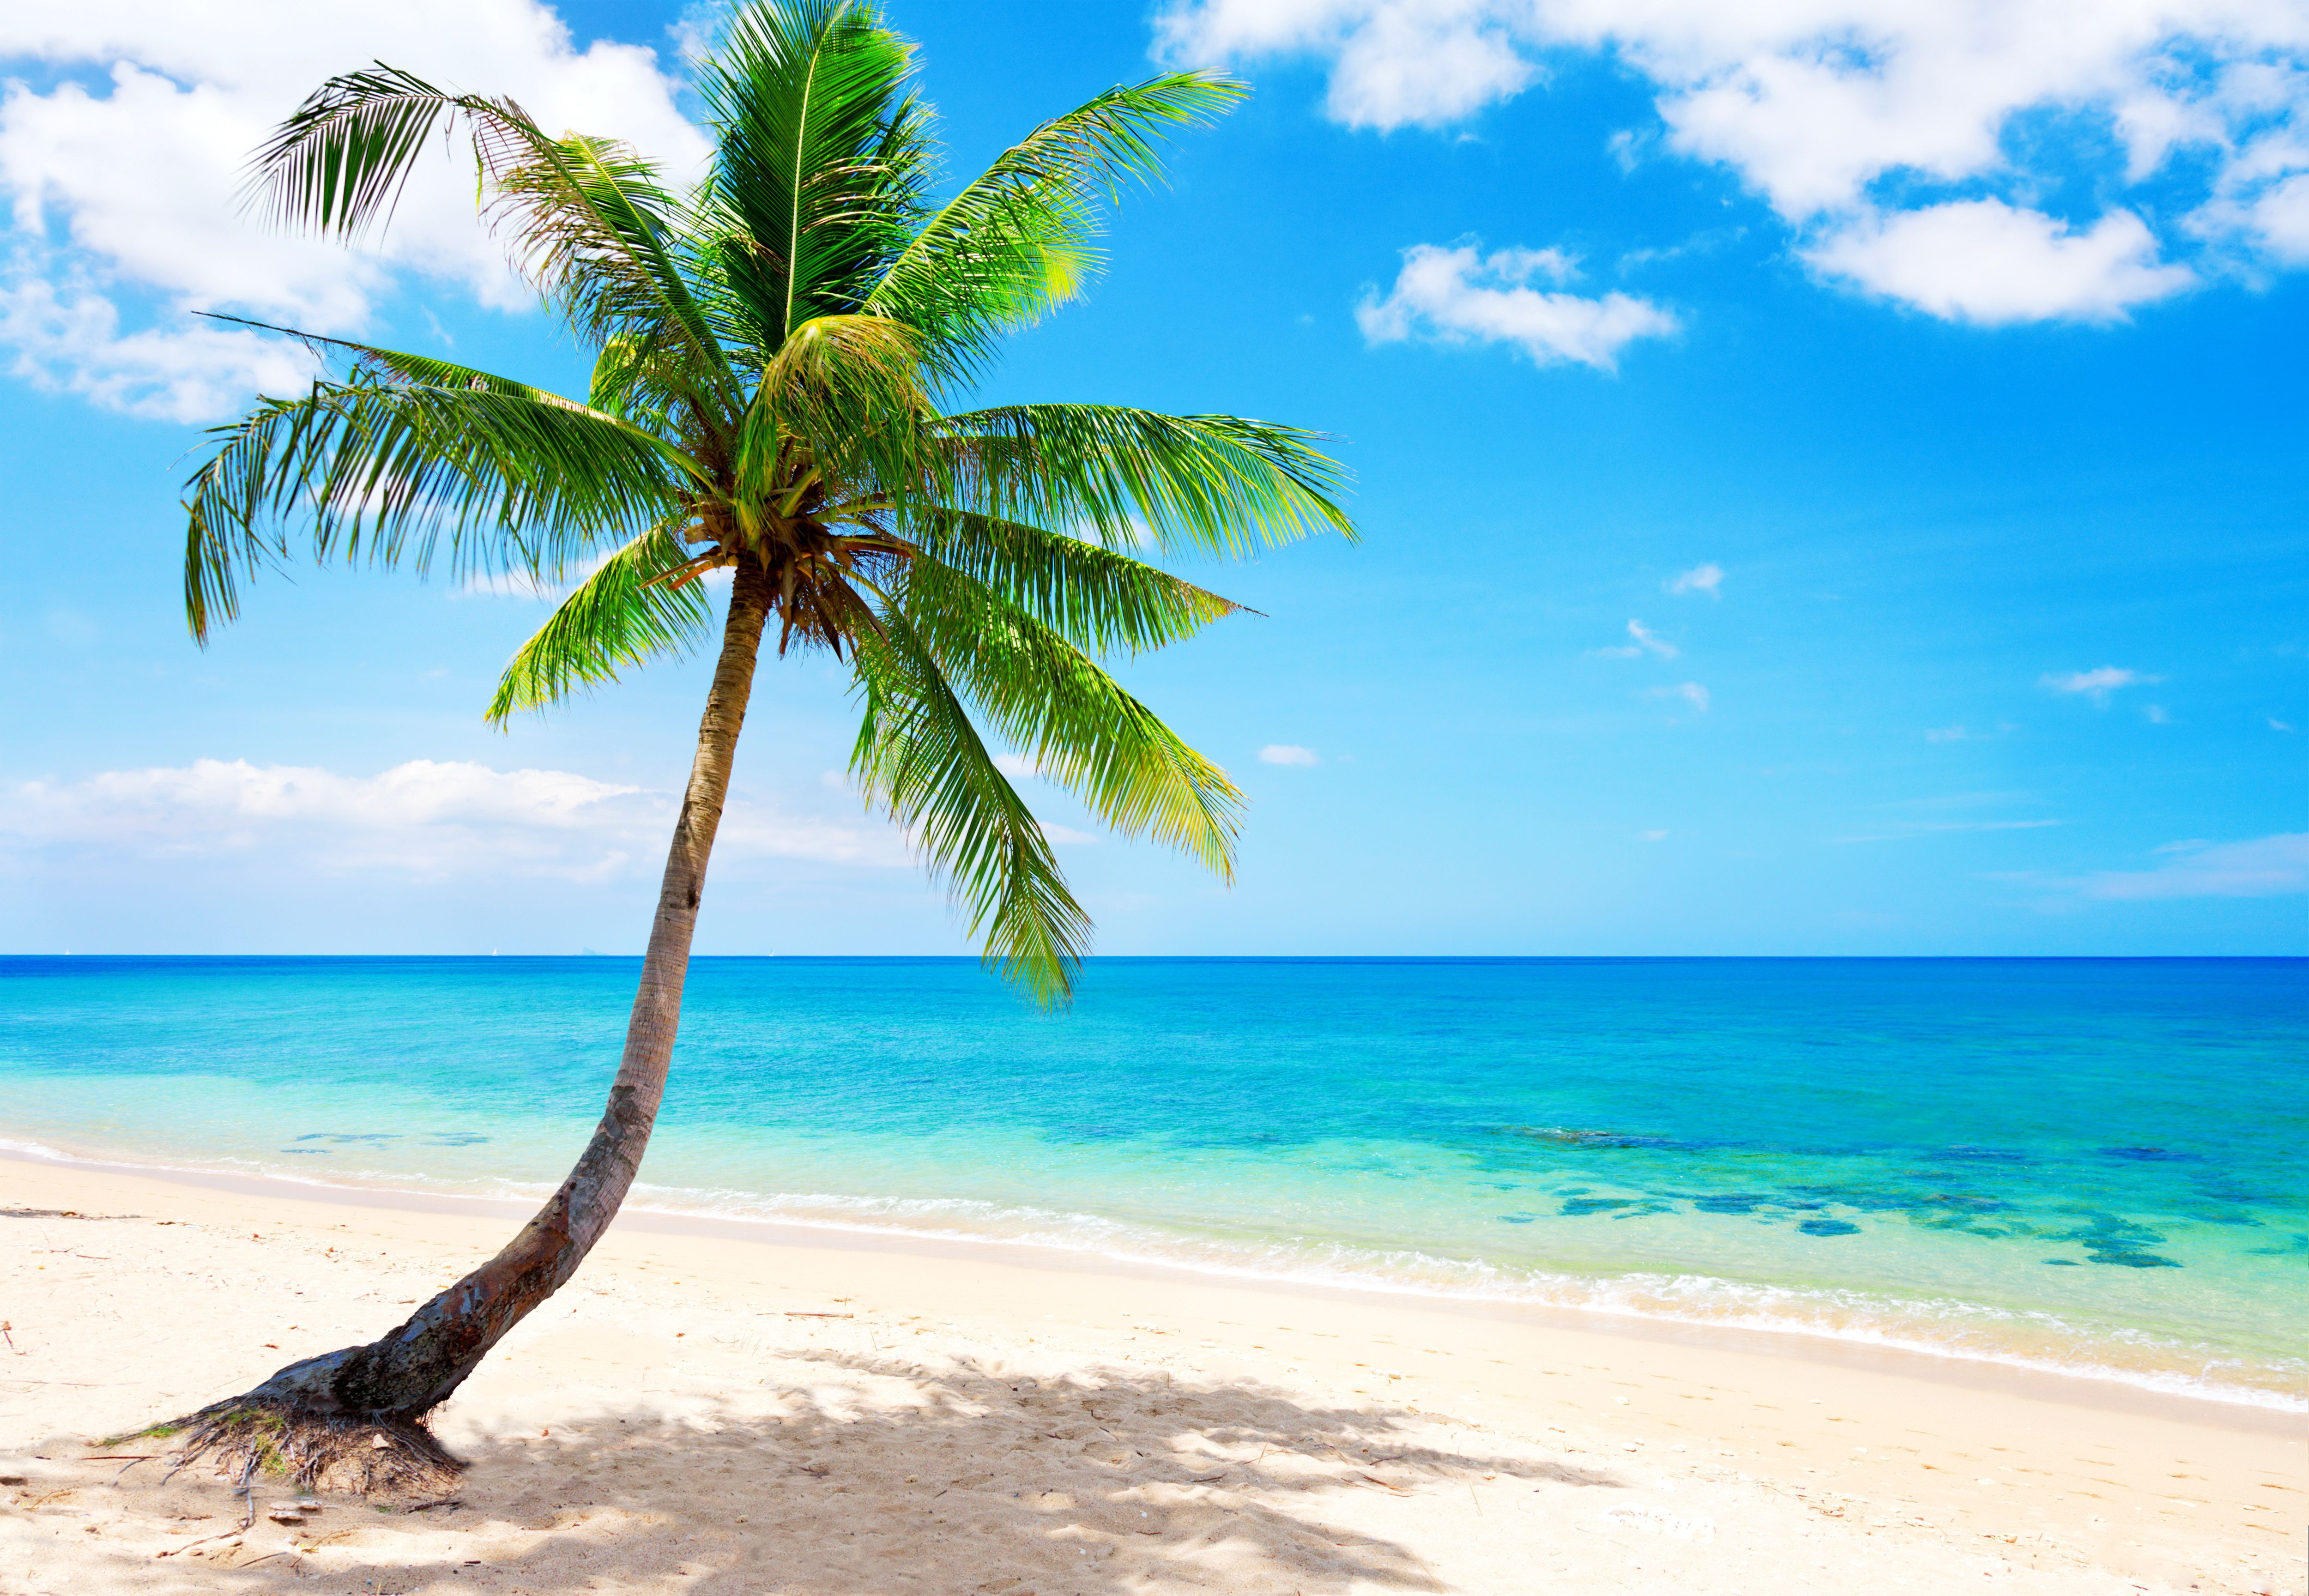 Tropical Beach Desktop Background wallpaper | On the Beach & By the ...